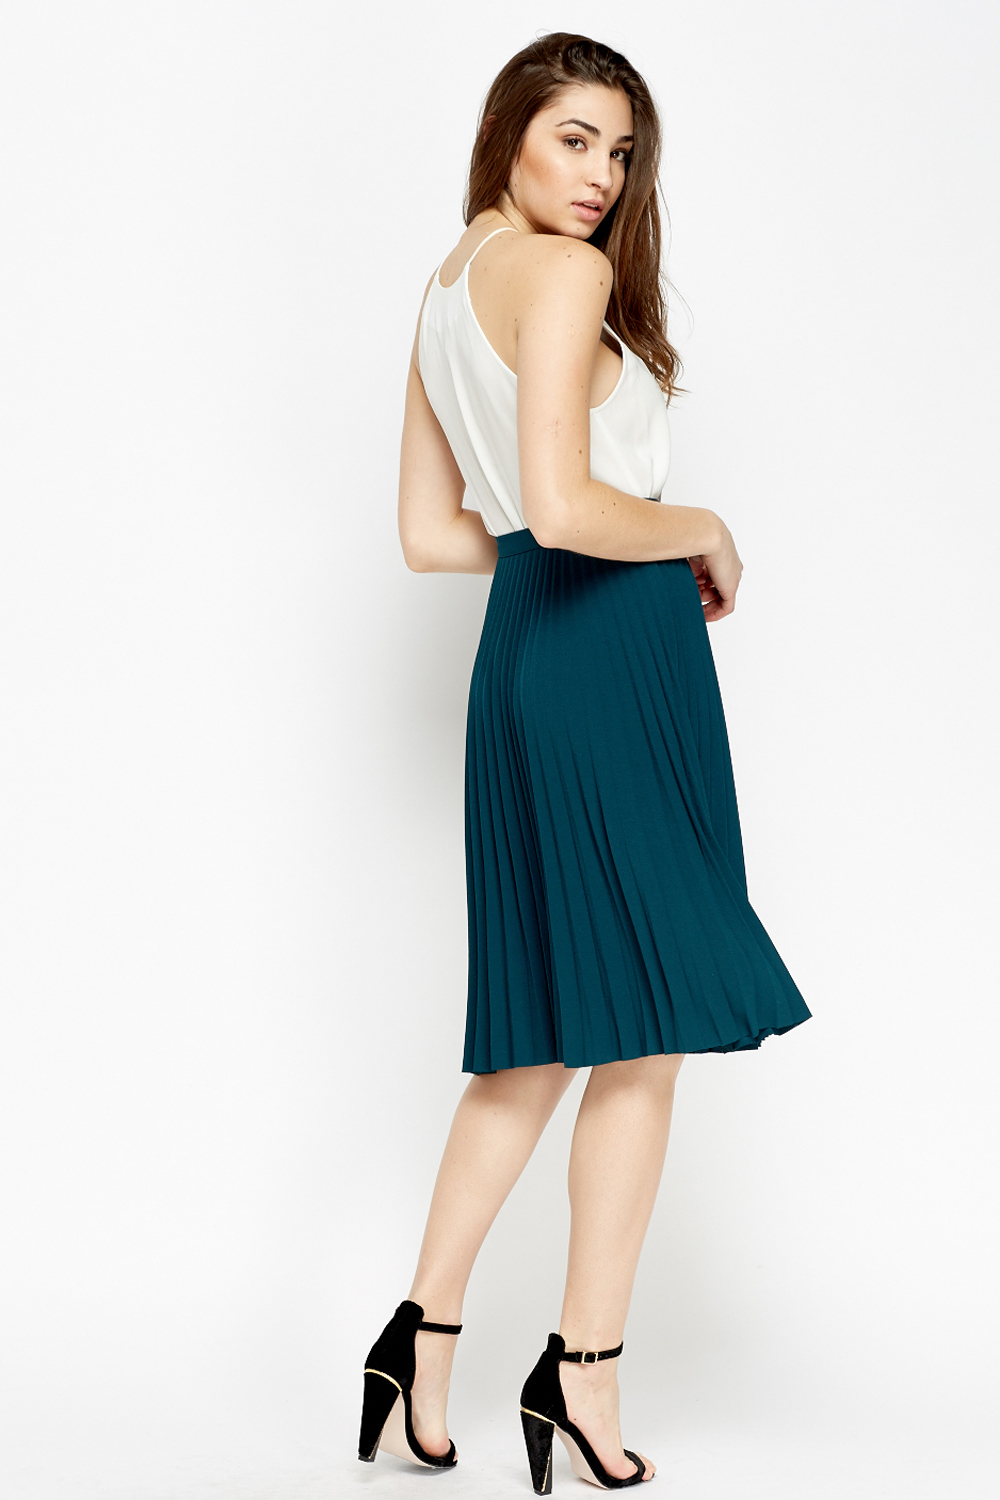 Sep 25,  · To wear high waisted skirts, choose the skirt style that flatters your body type the most, such as a pencil, A-line, pleated, or maxi skirt. Next, pick out a top that you can tuck into the skirt, or go with a crop top that's just short enough to graze the top of the skirt's liveblog.ga: K.